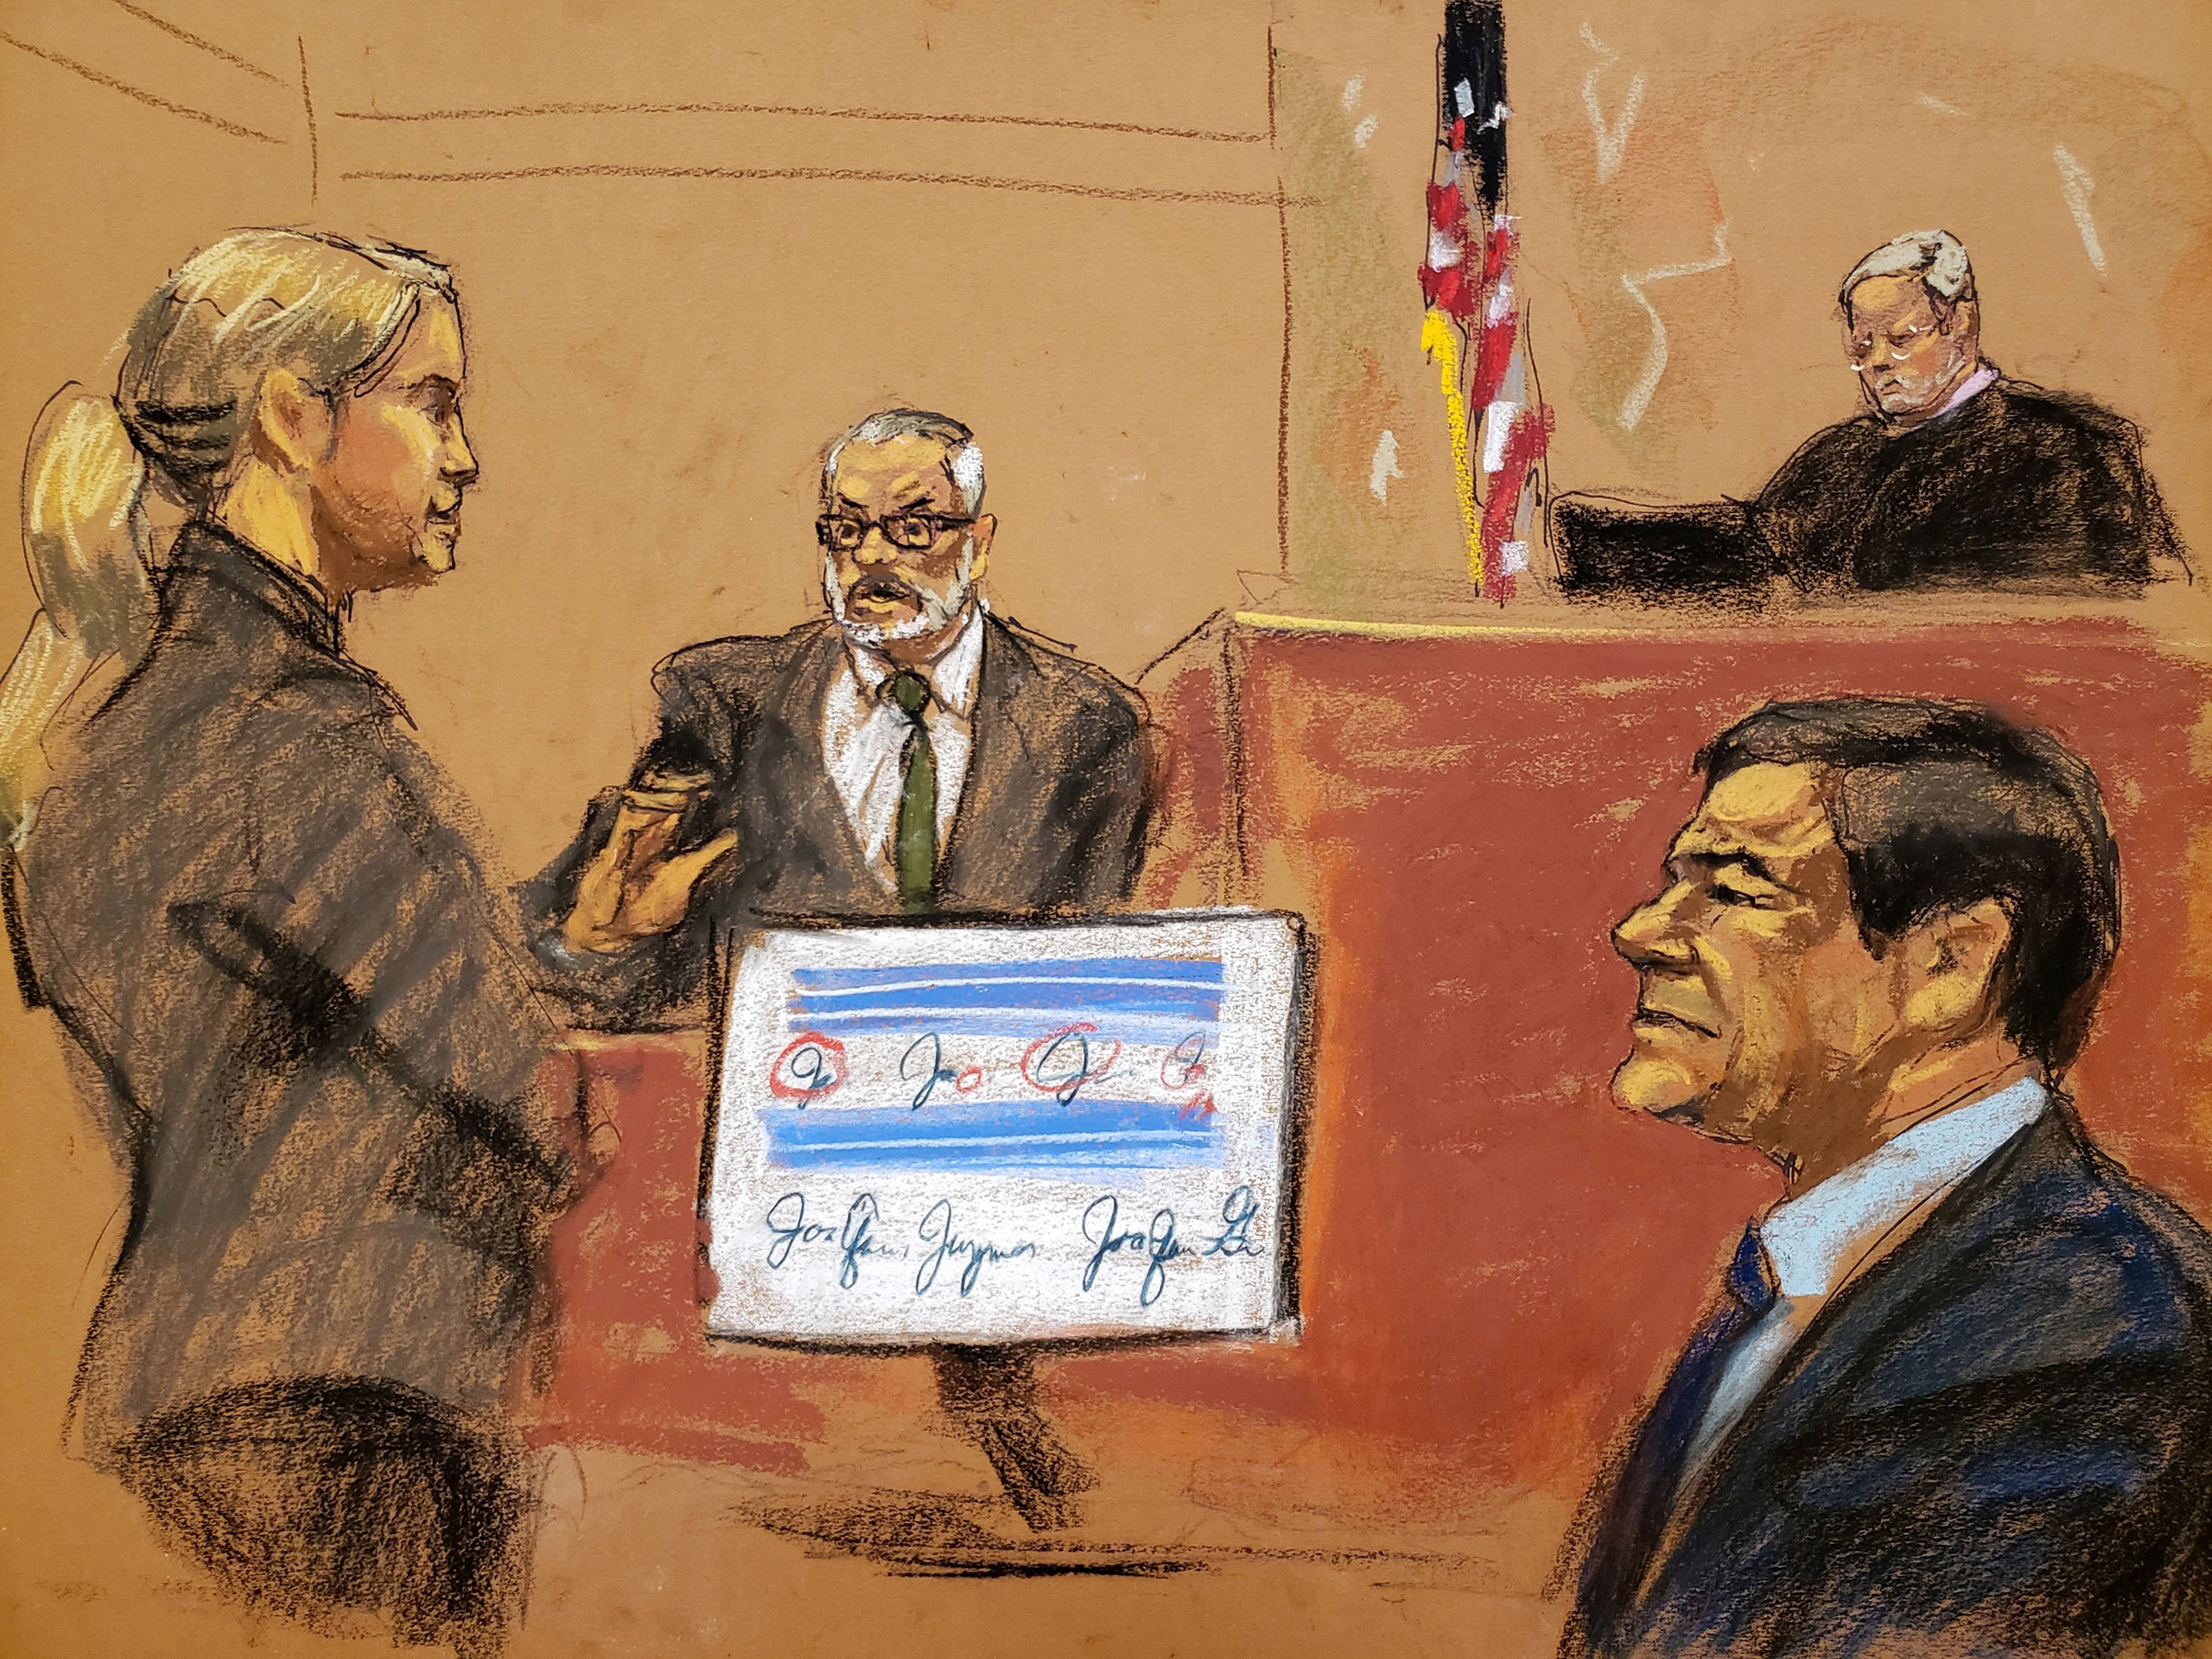 Assistant U.S. Attorney Amanda Liskamm questions Damaso Lopez Nunez on the witness stand in this courtroom sketch during the Brooklyn federal court trial of accused Mexican durg lord Joaquin  El Chapo  in New York City, on Jan. 24, 2019.